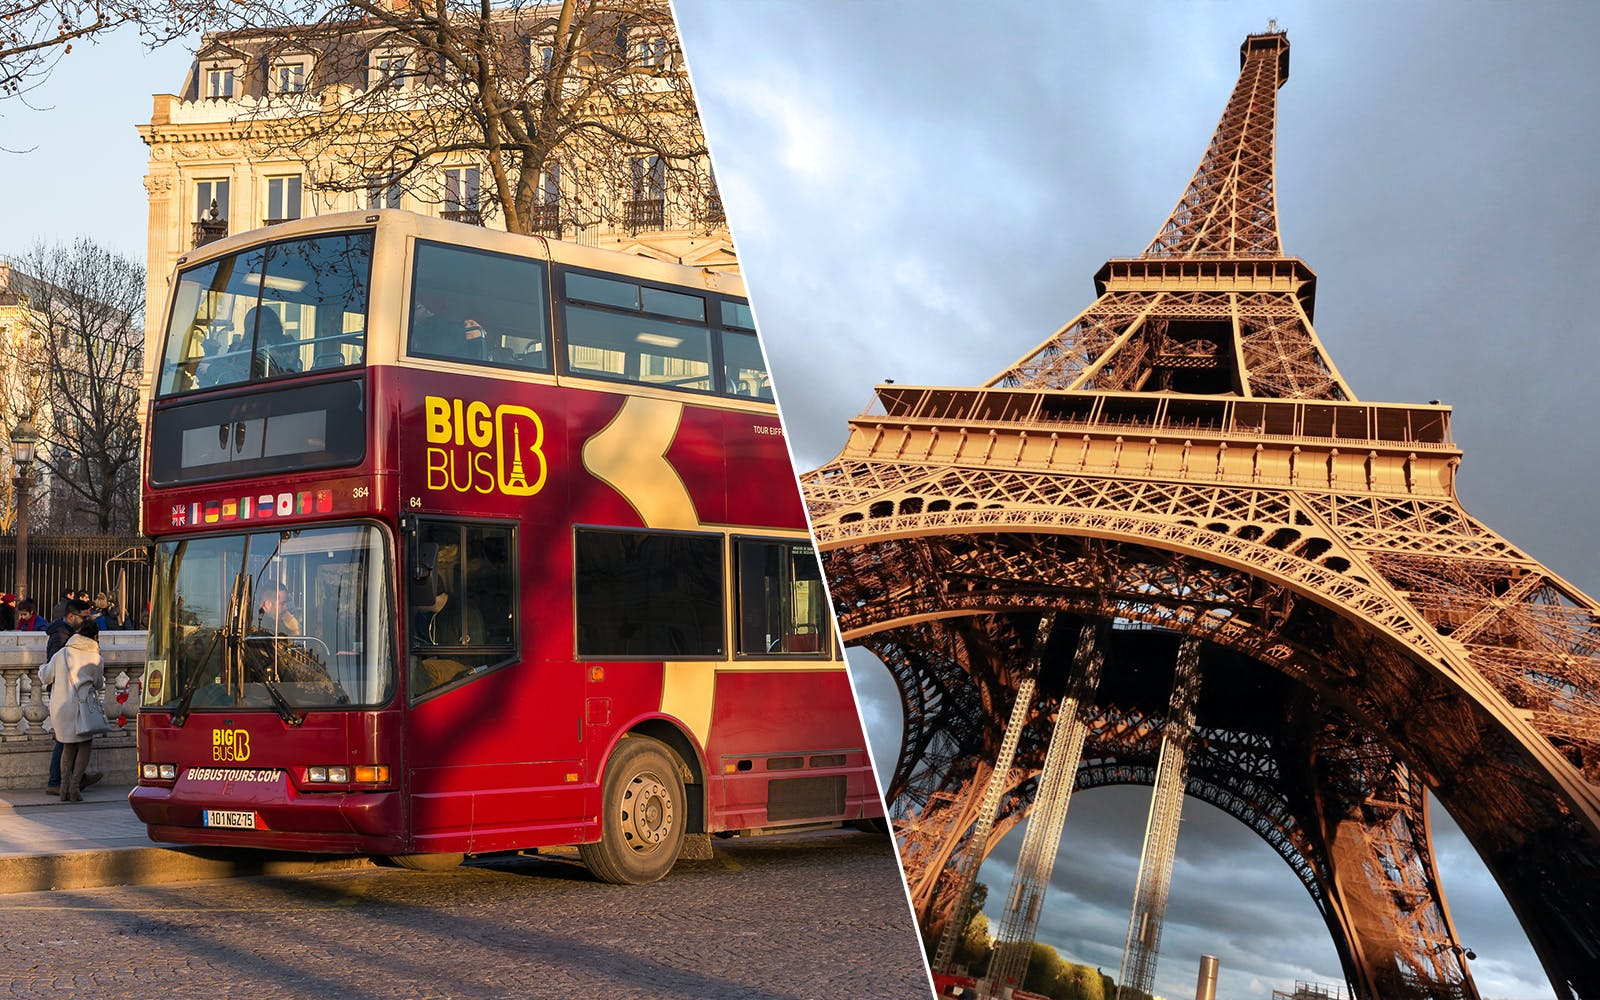 Skip the Line Eiffel Summit & Hop-On Hop-Off Tickets Combo